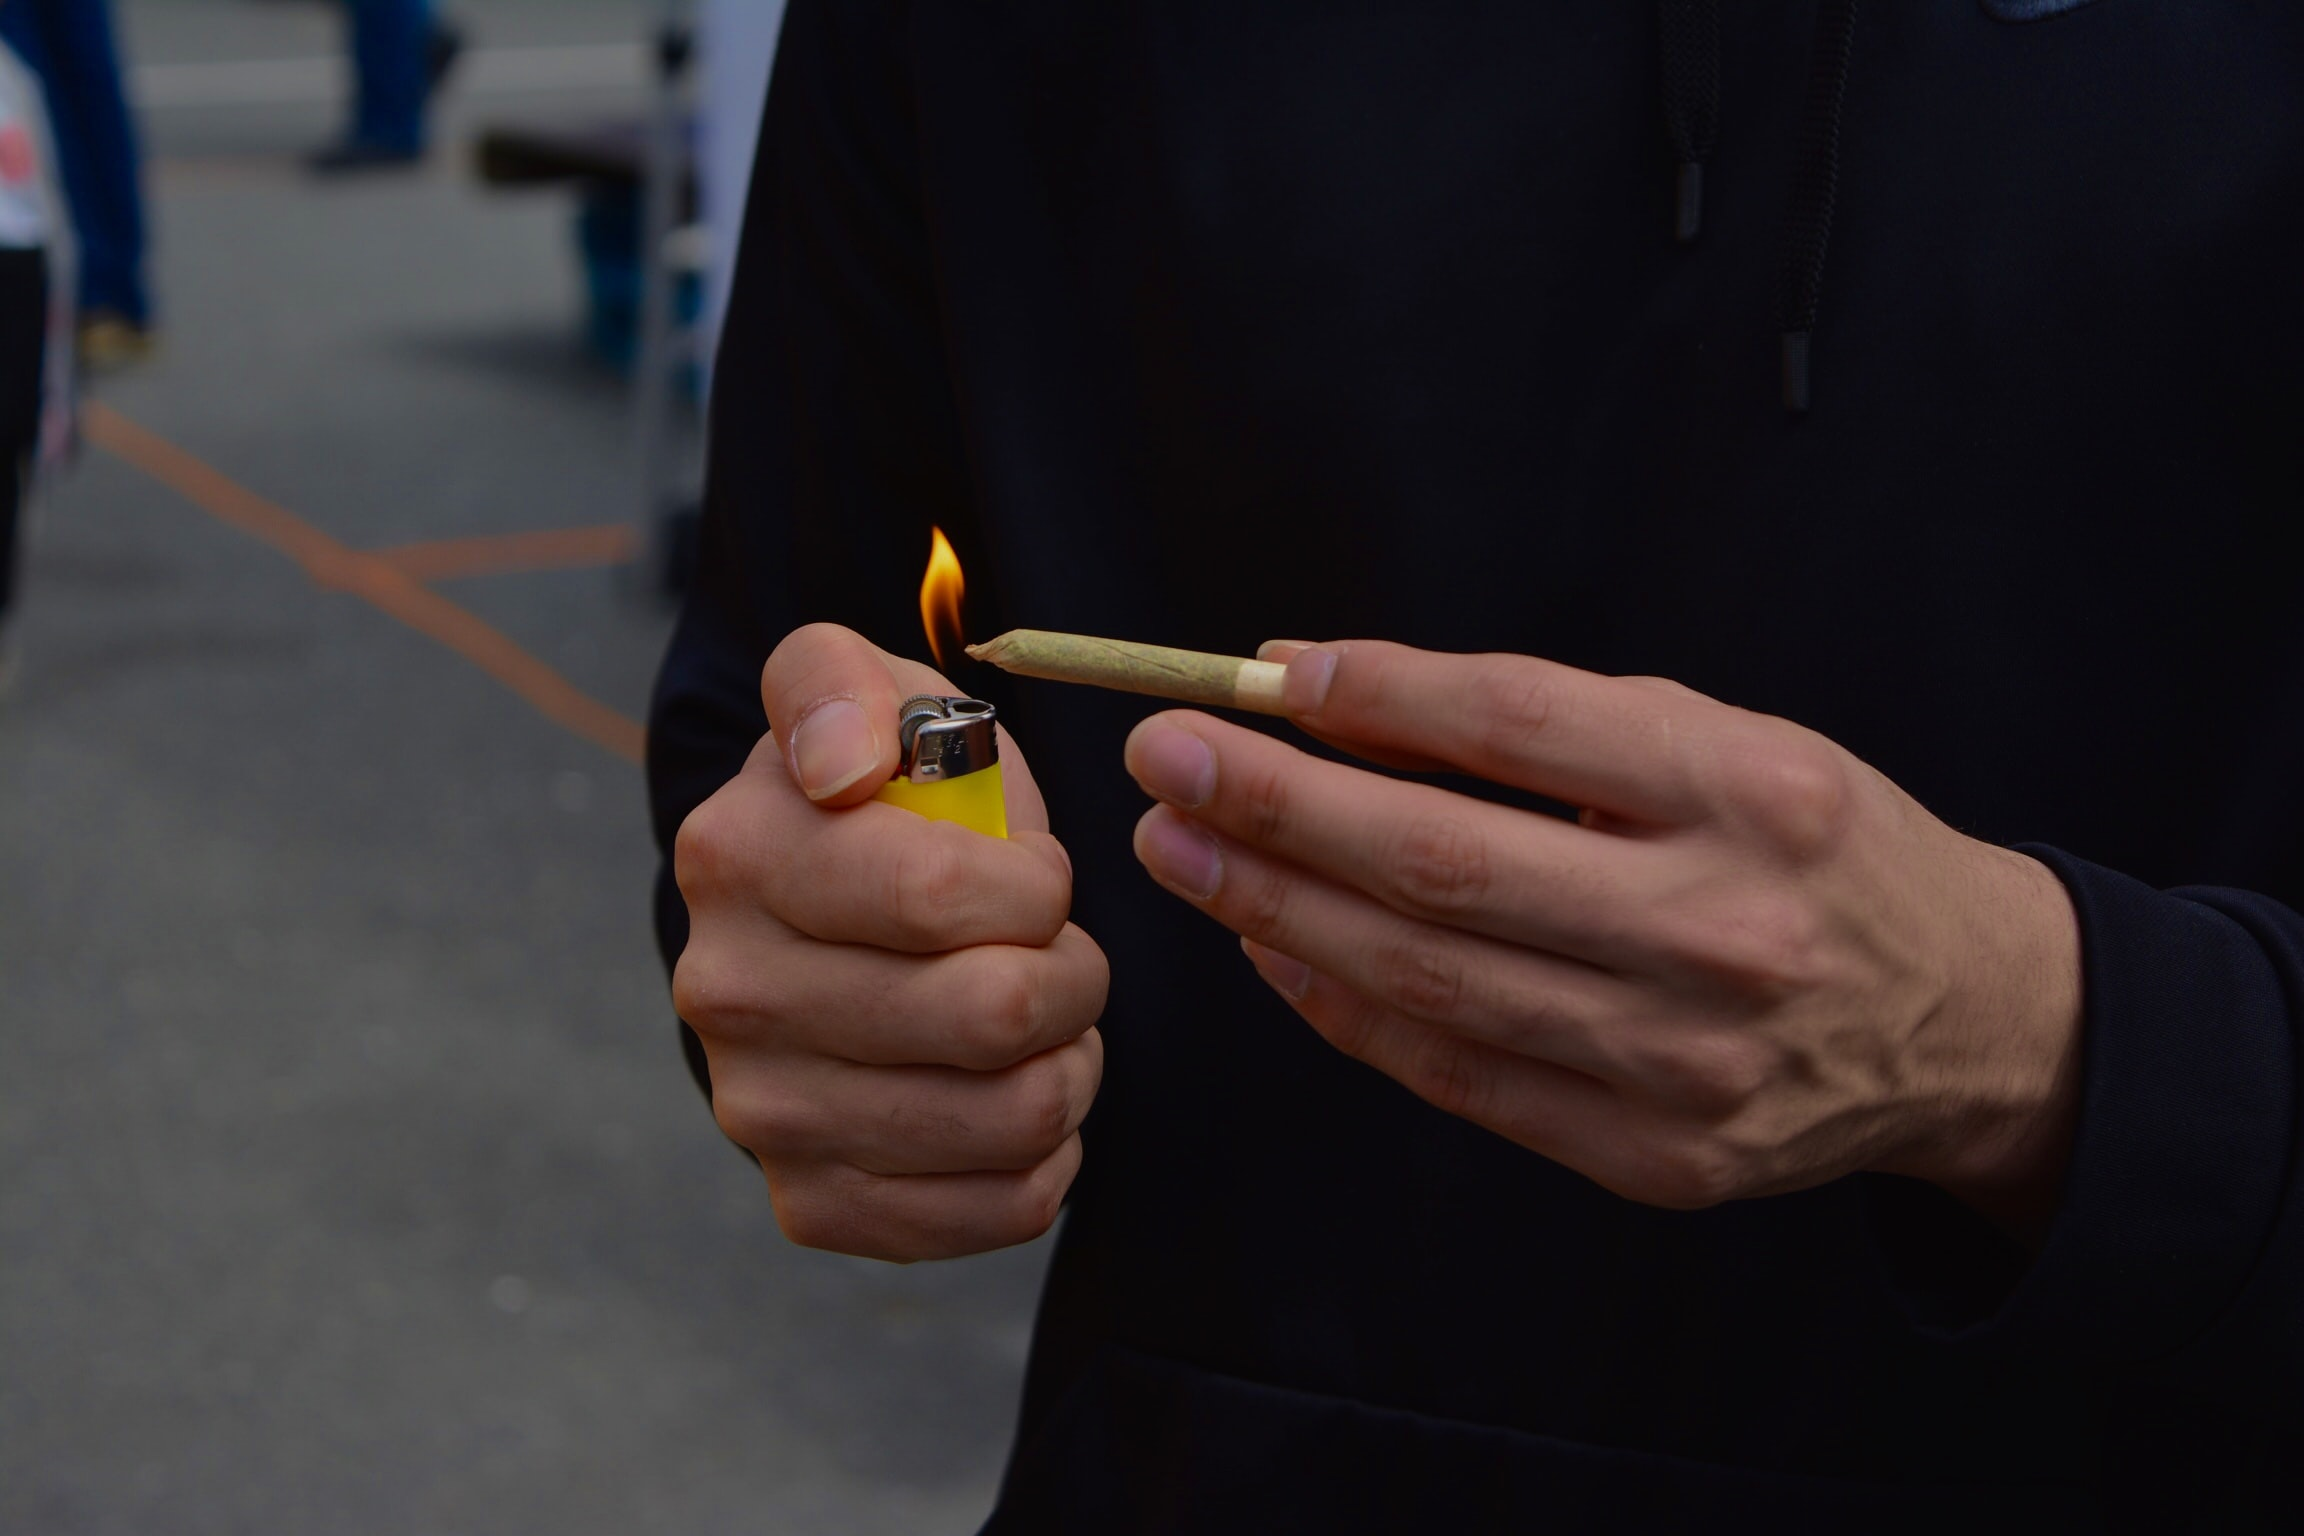 person holding blunt and lighter